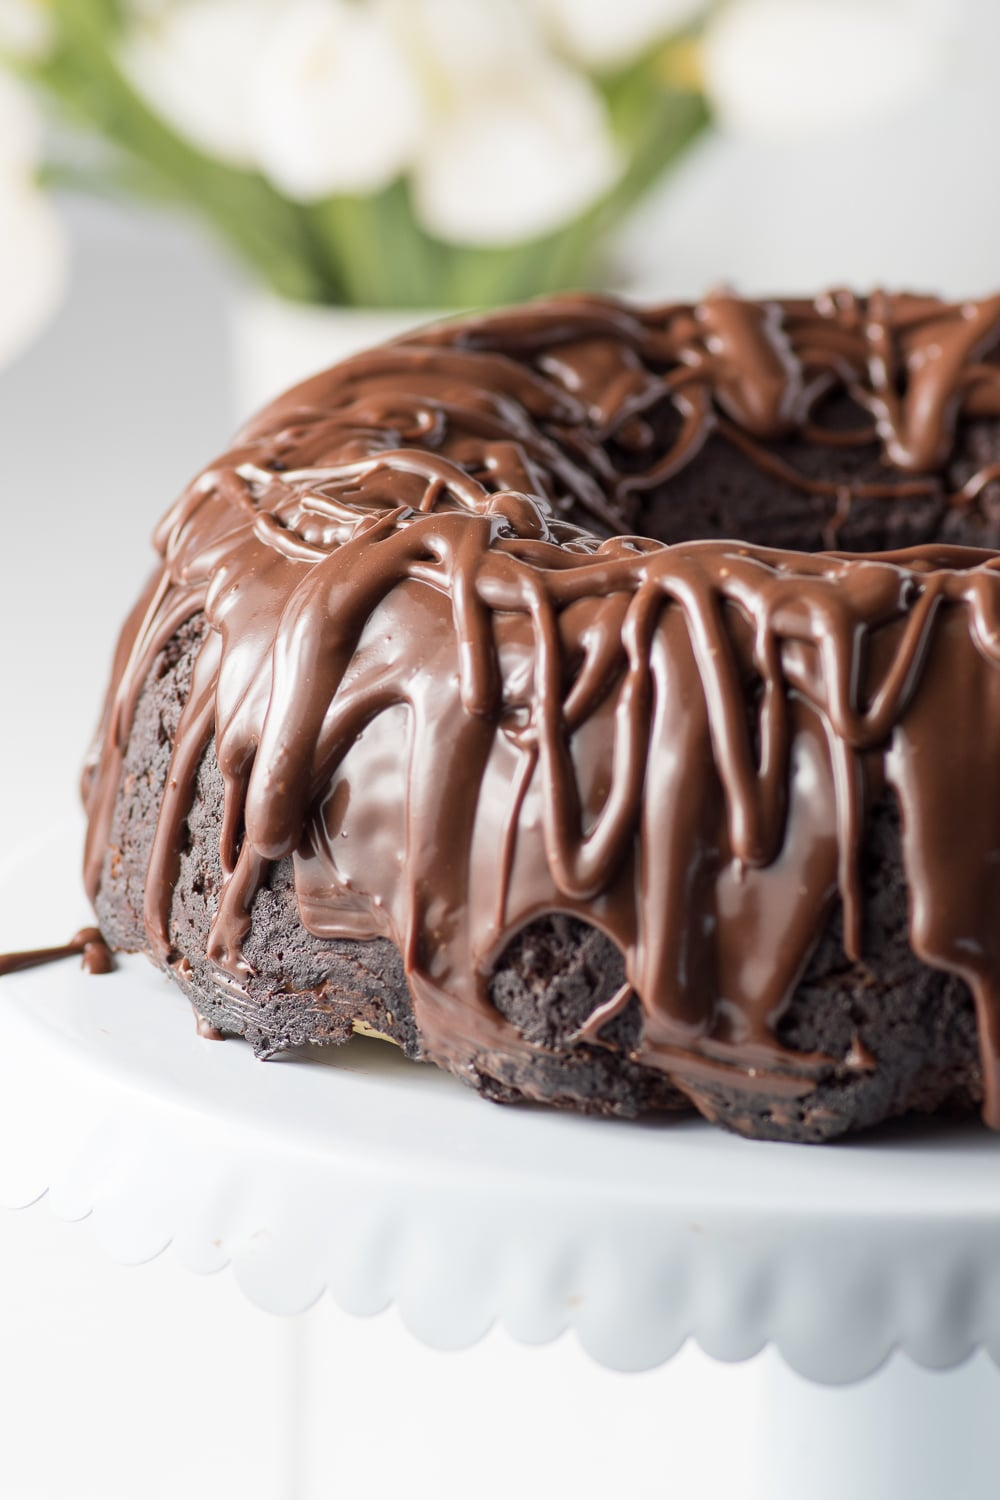 Dark chocolate ganache dripping from a chocolate bundt cake